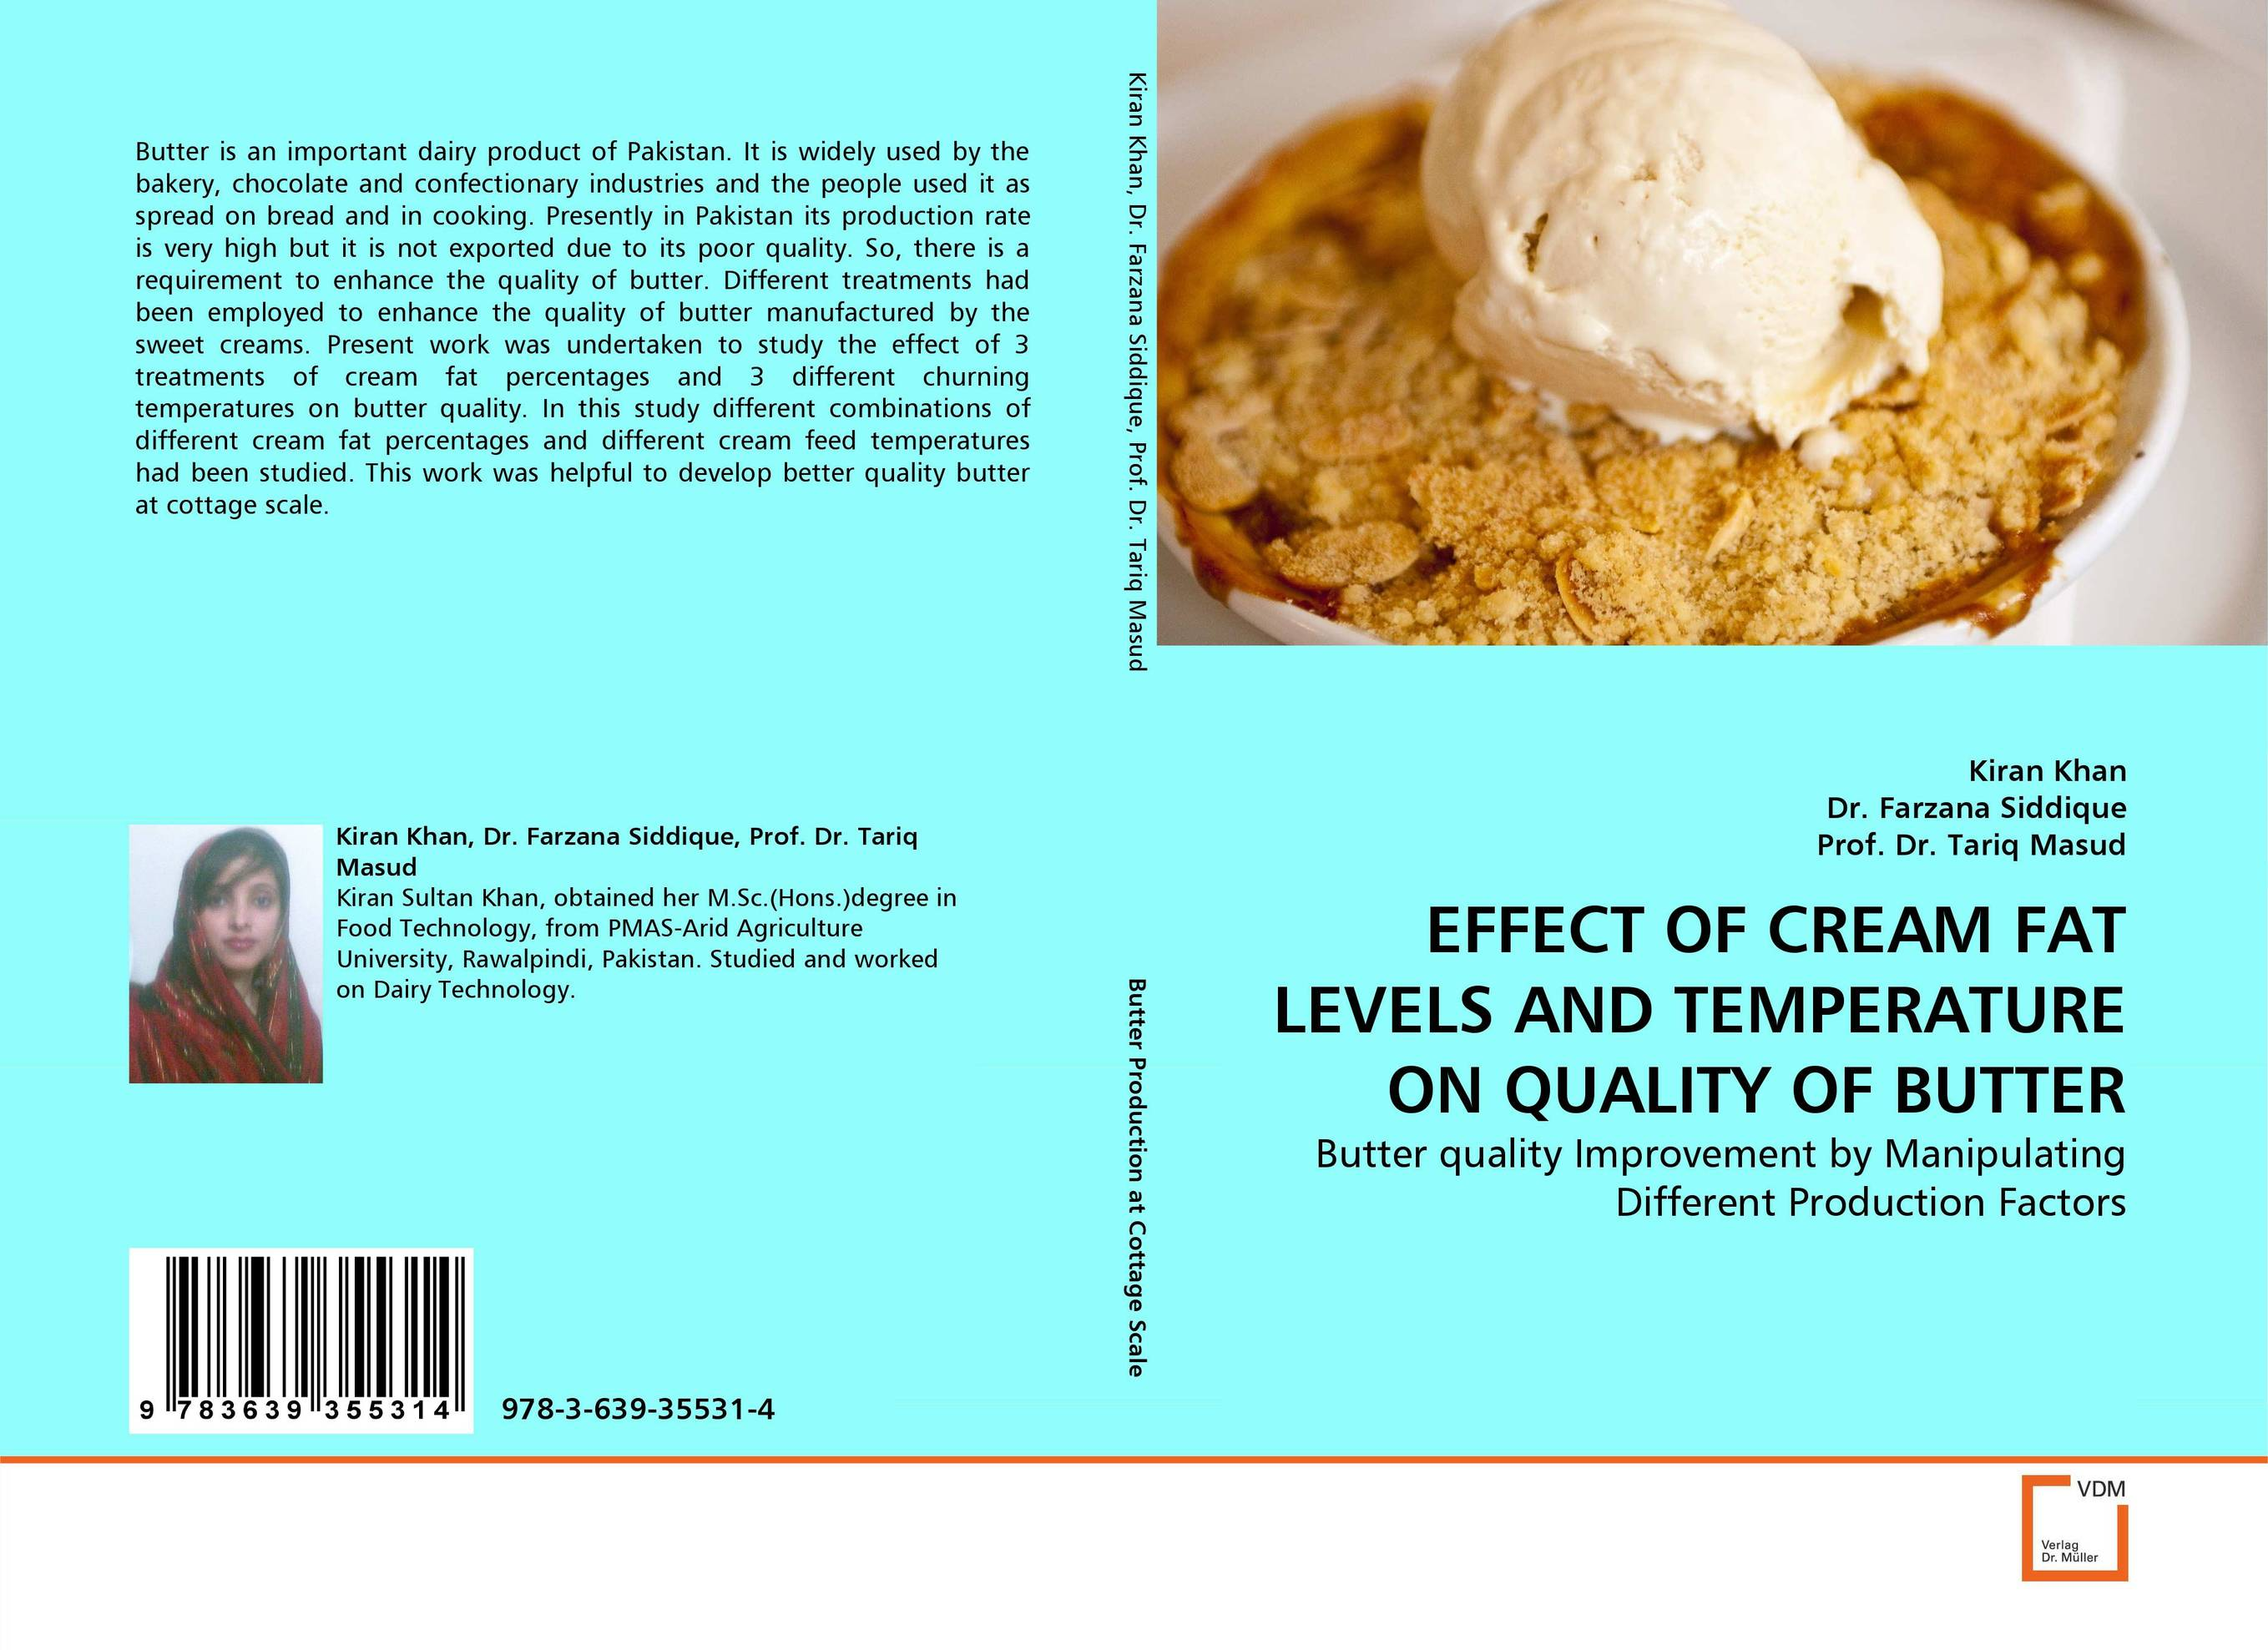 EFFECT OF CREAM FAT LEVELS AND TEMPERATURE ON QUALITY OF BUTTER